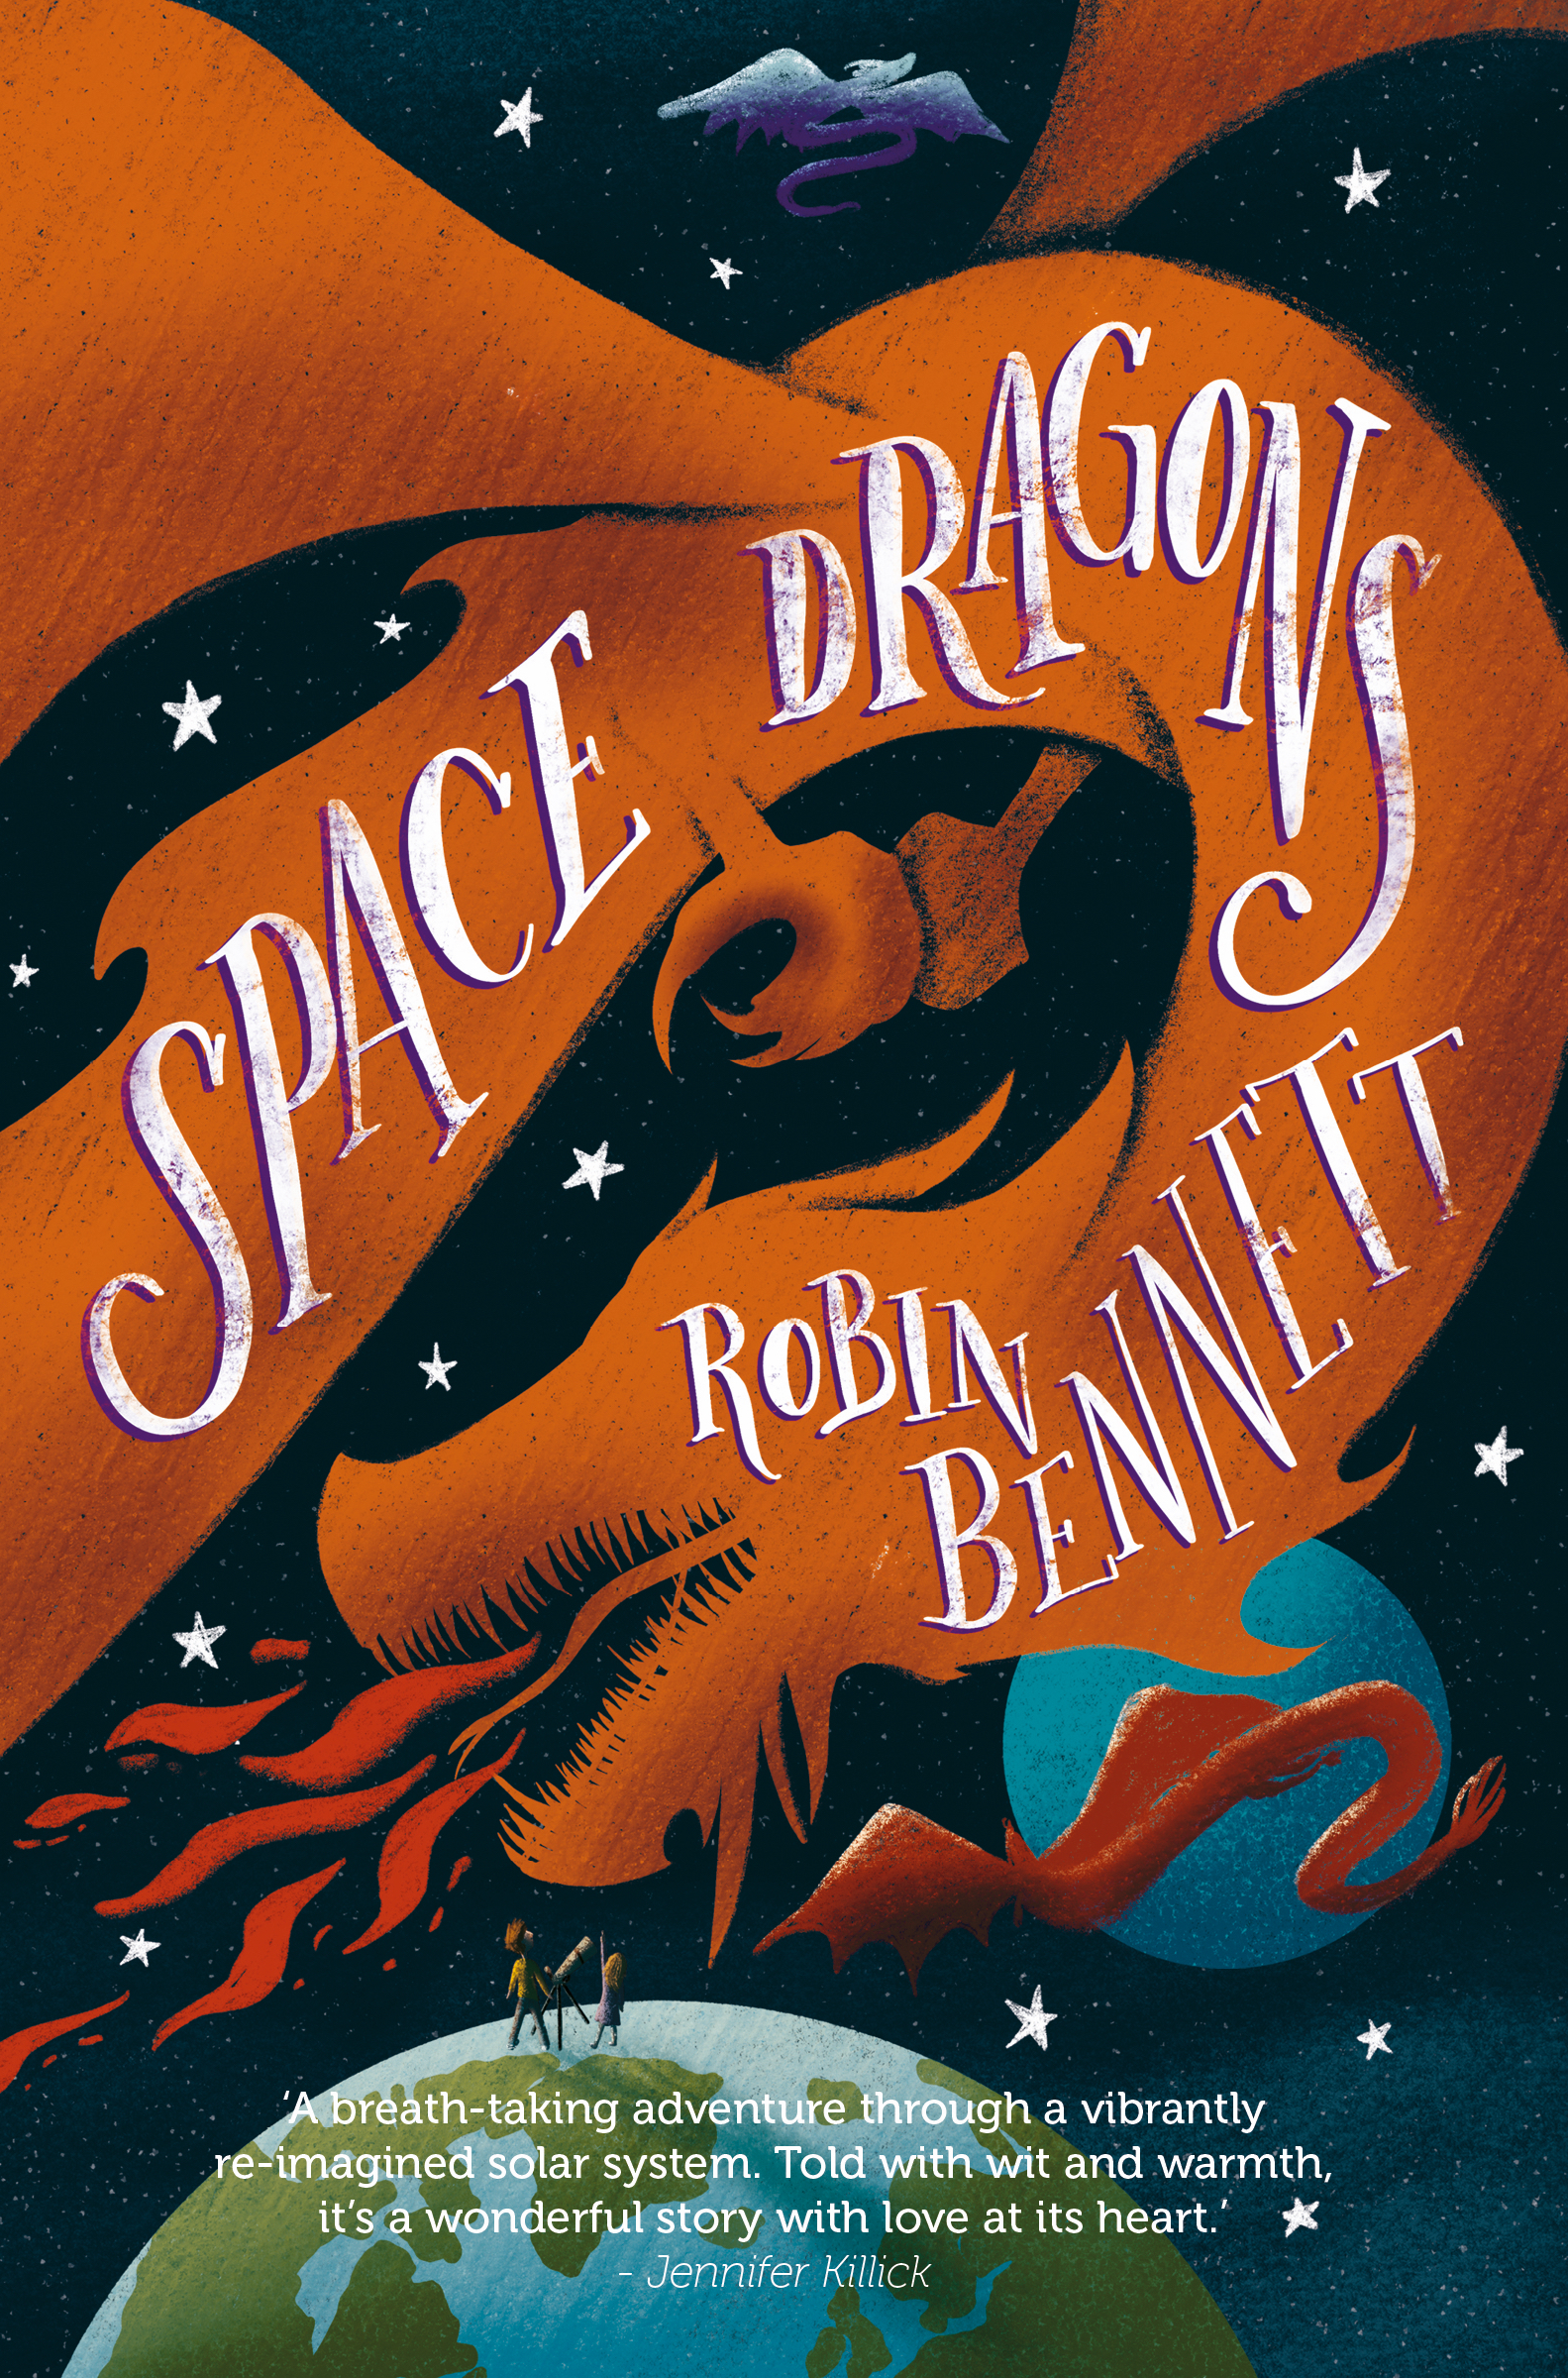 Space Dragons by Robin Bennett